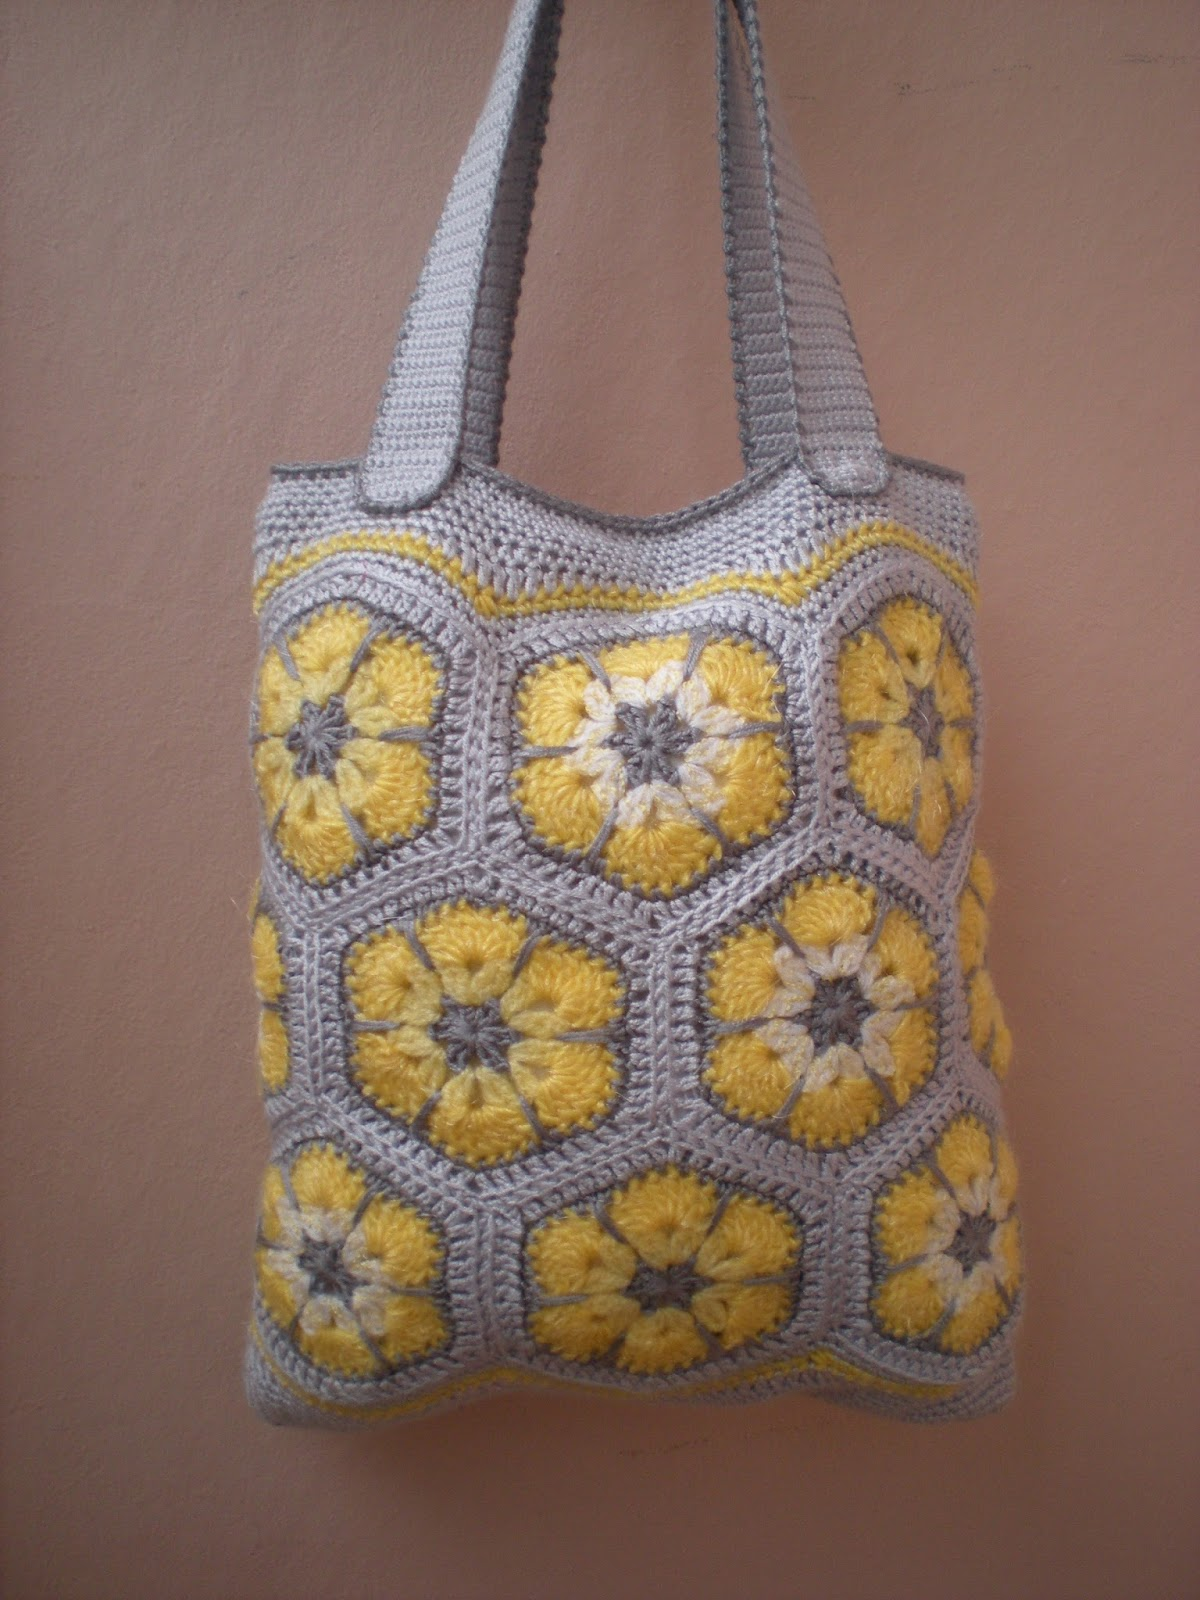 EmmHouse: Purse with yellow flowers